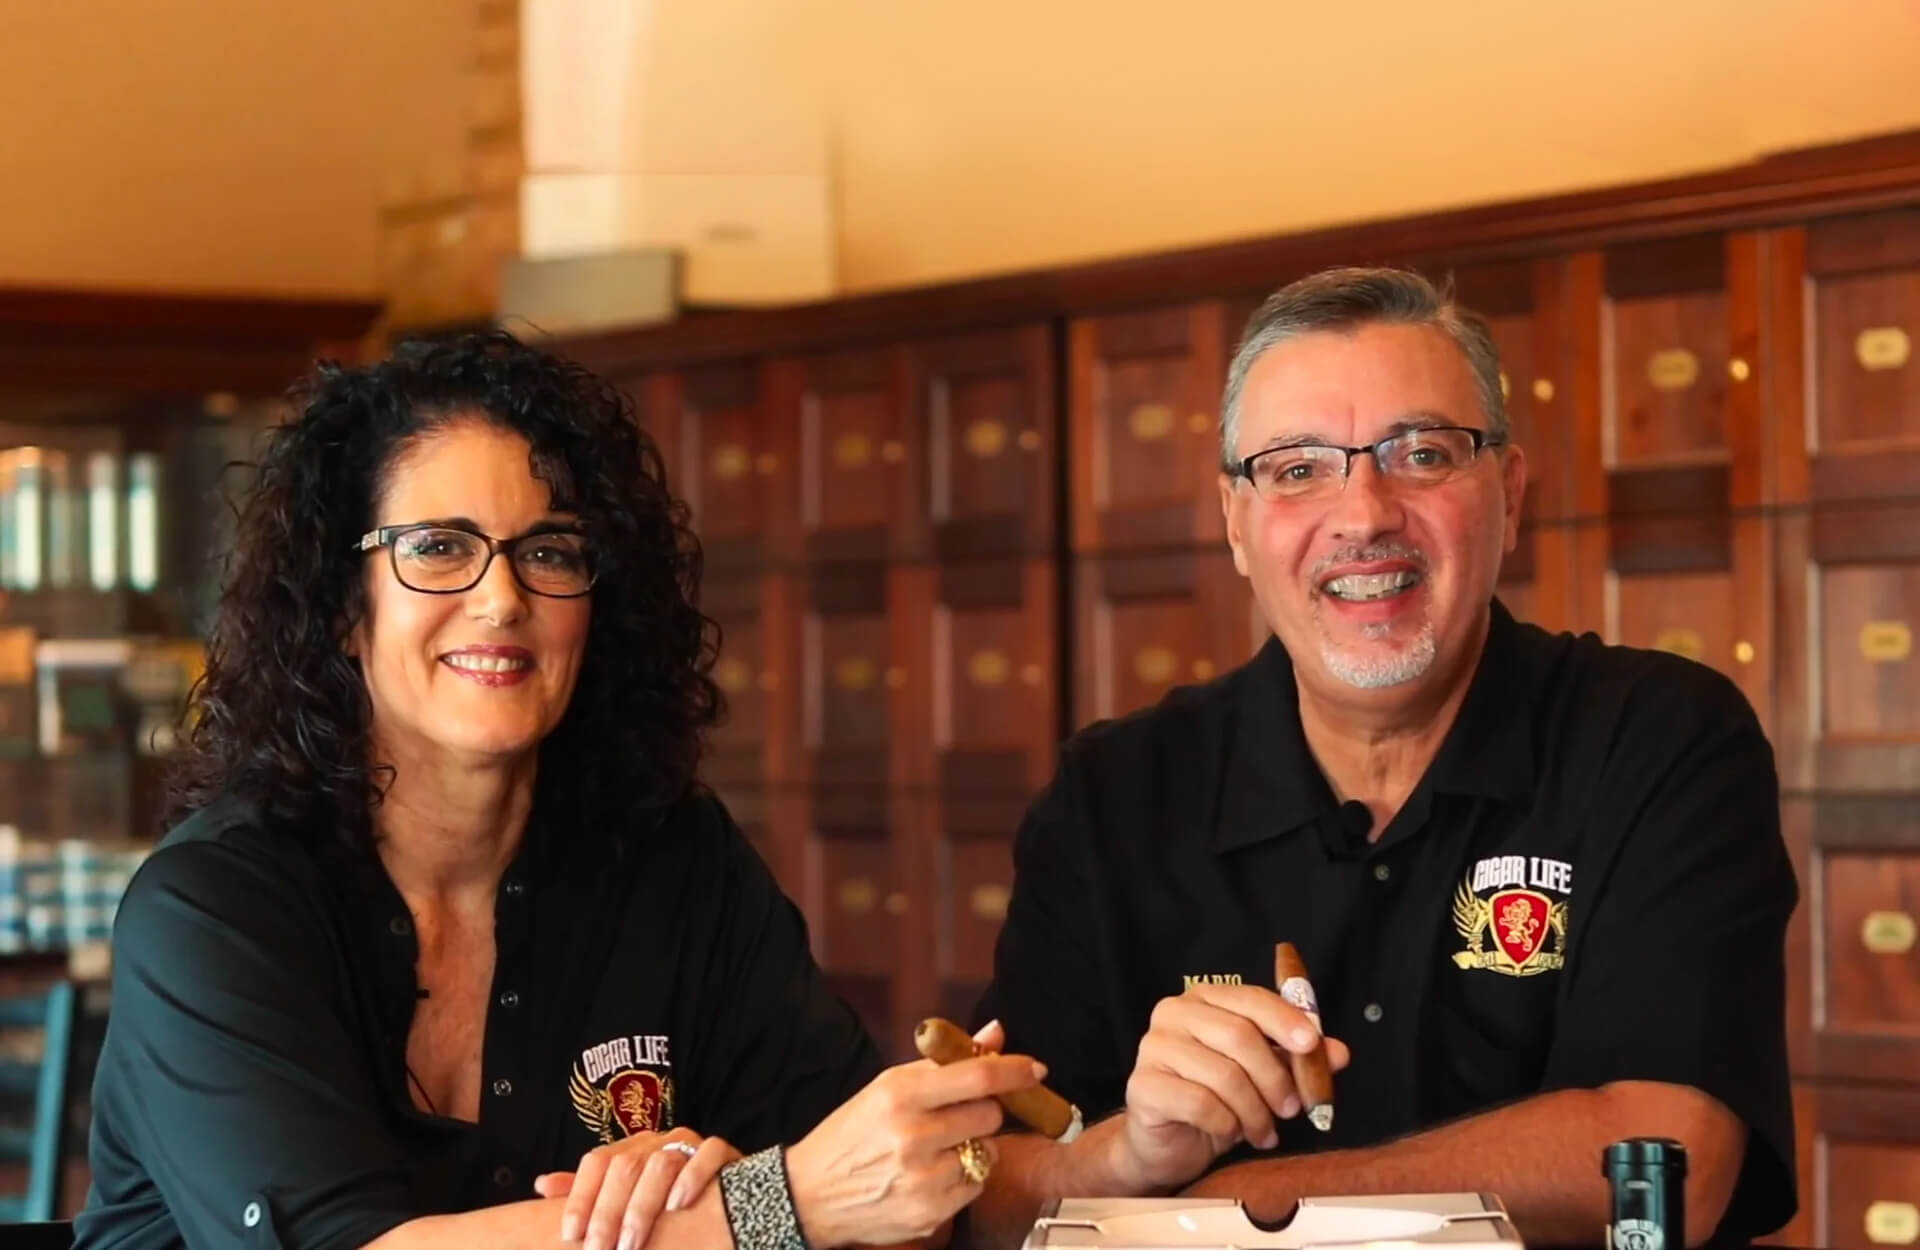 Mario and Patty from Cigar Life - Female Owned Small Business